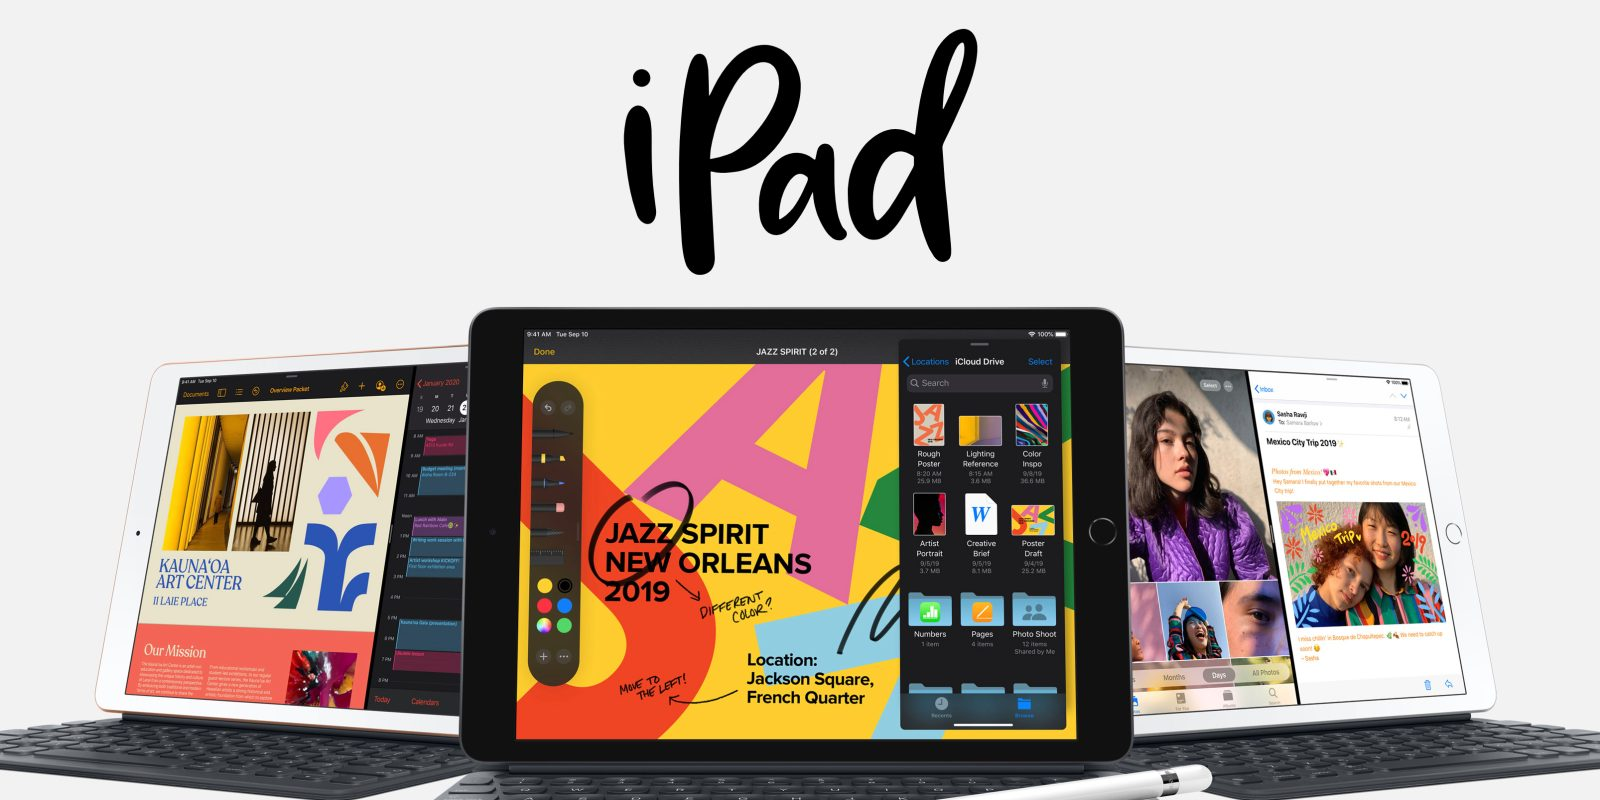 Black Friday pricing returns on 10.2-inch iPad, iPad Pro, and HomePod